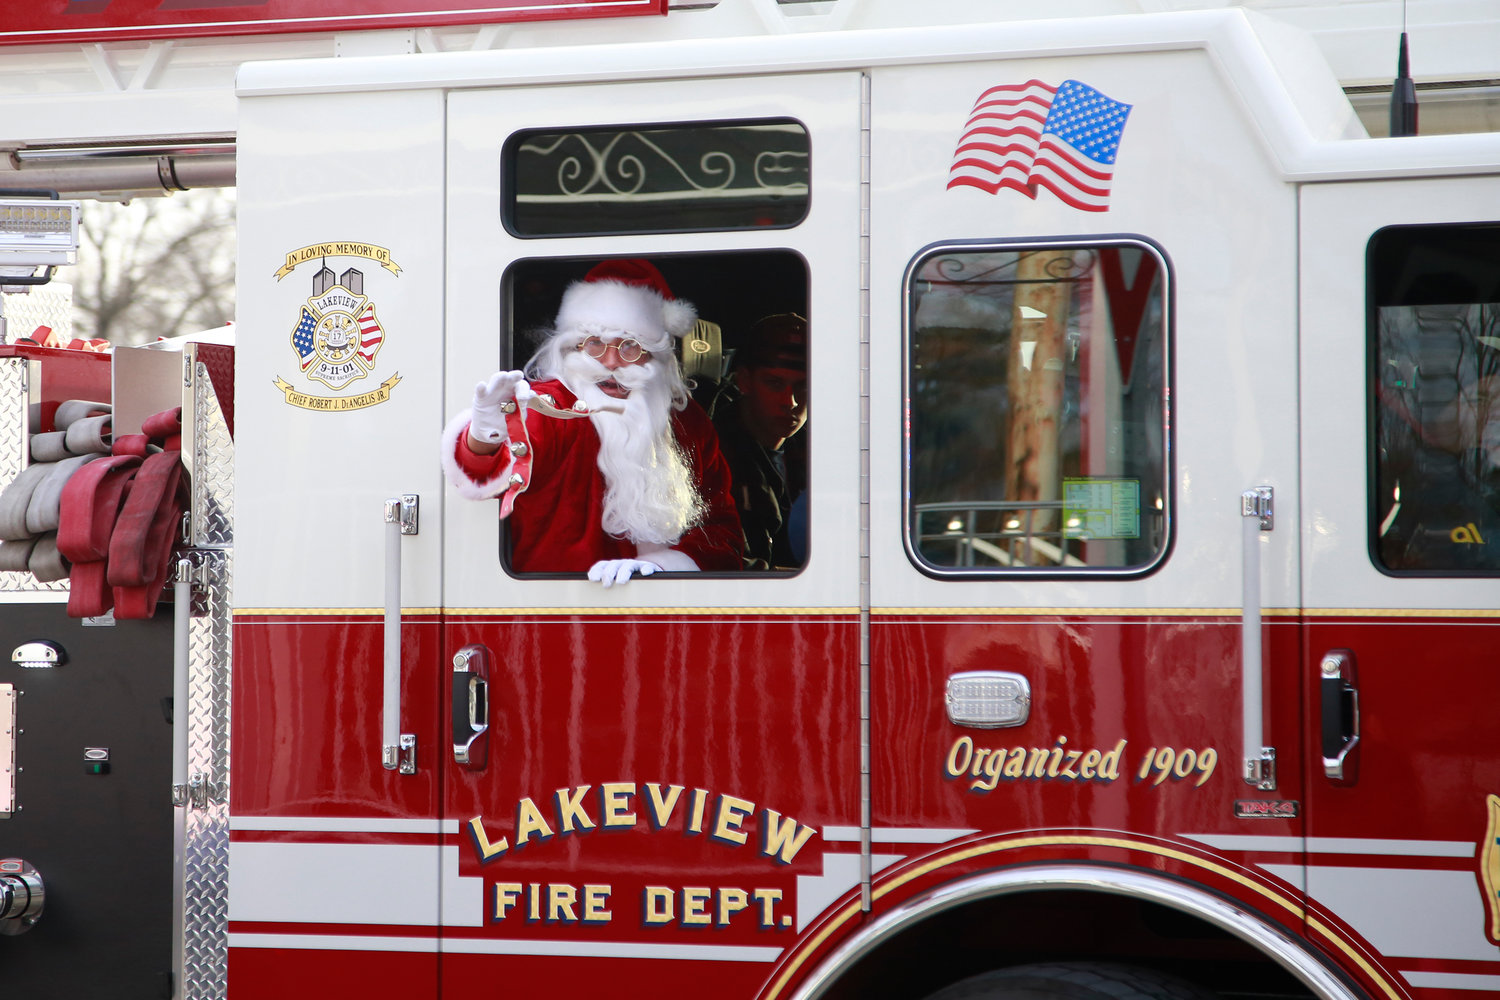 Santa Claus arrived to Holiday at Halls in a fire truck from the Lakeview Fire Department.